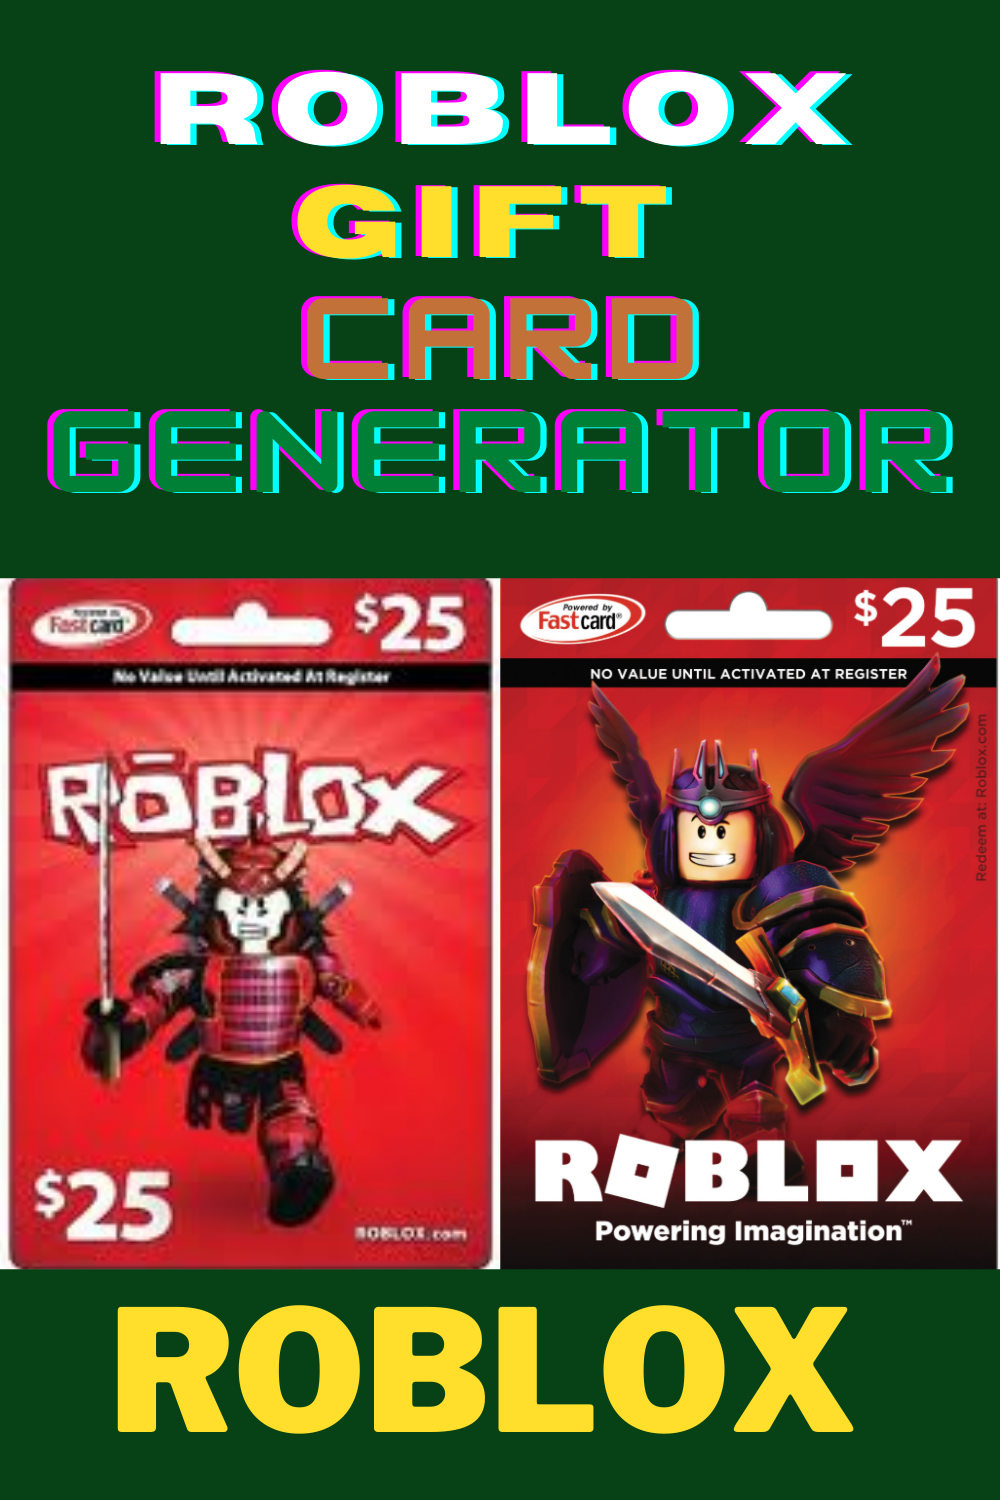 Roblox Gift Card Generator Roblox Gifts Gift Card Generator Xbox Gift Card